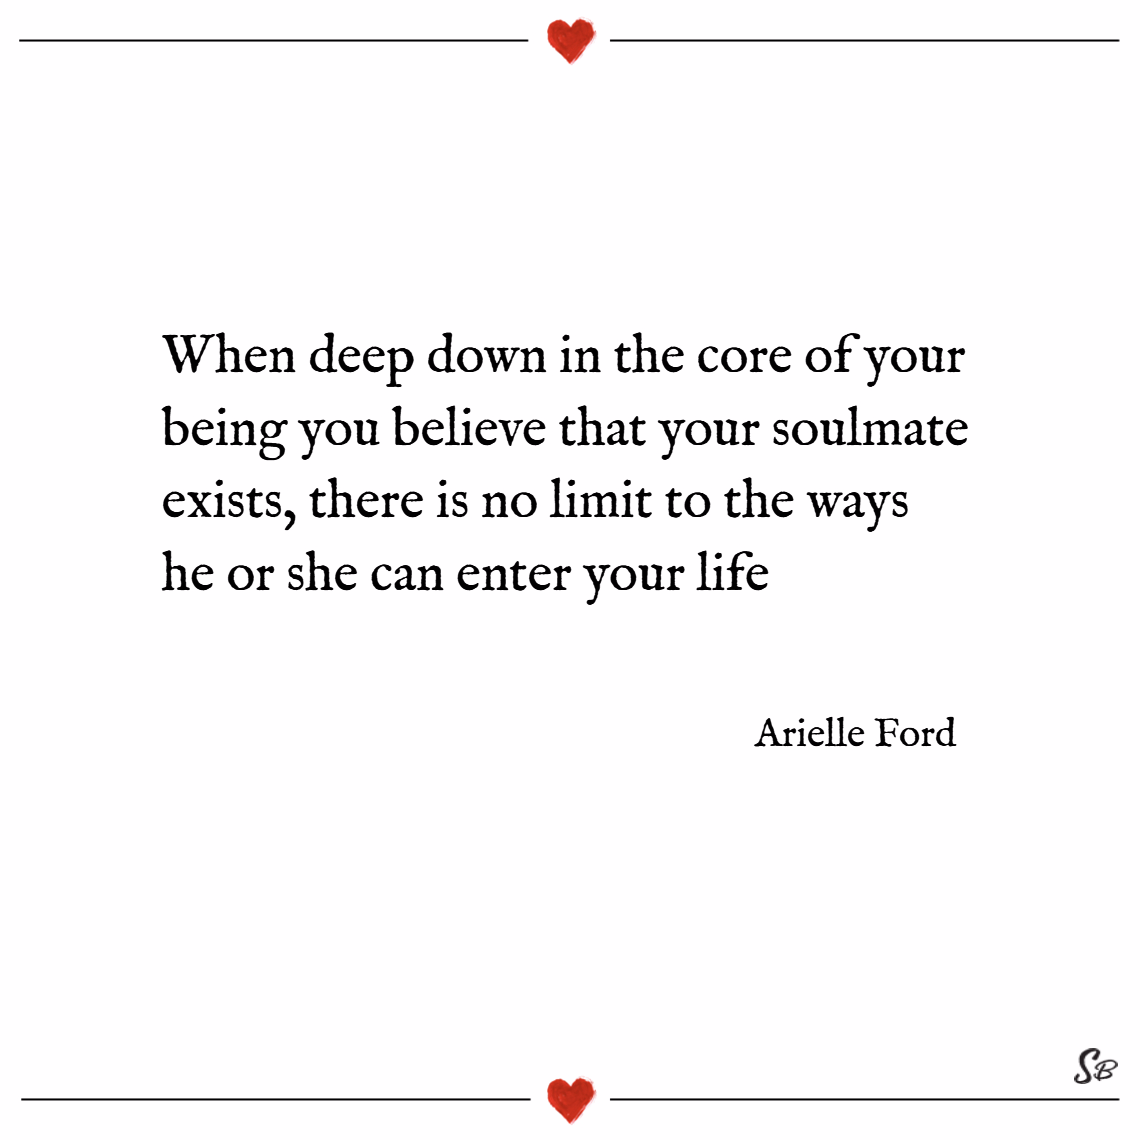 When deep down in the core of your being you believe that your soulmate exists, there is no limit to the ways he or she can enter your life. – arielle ford